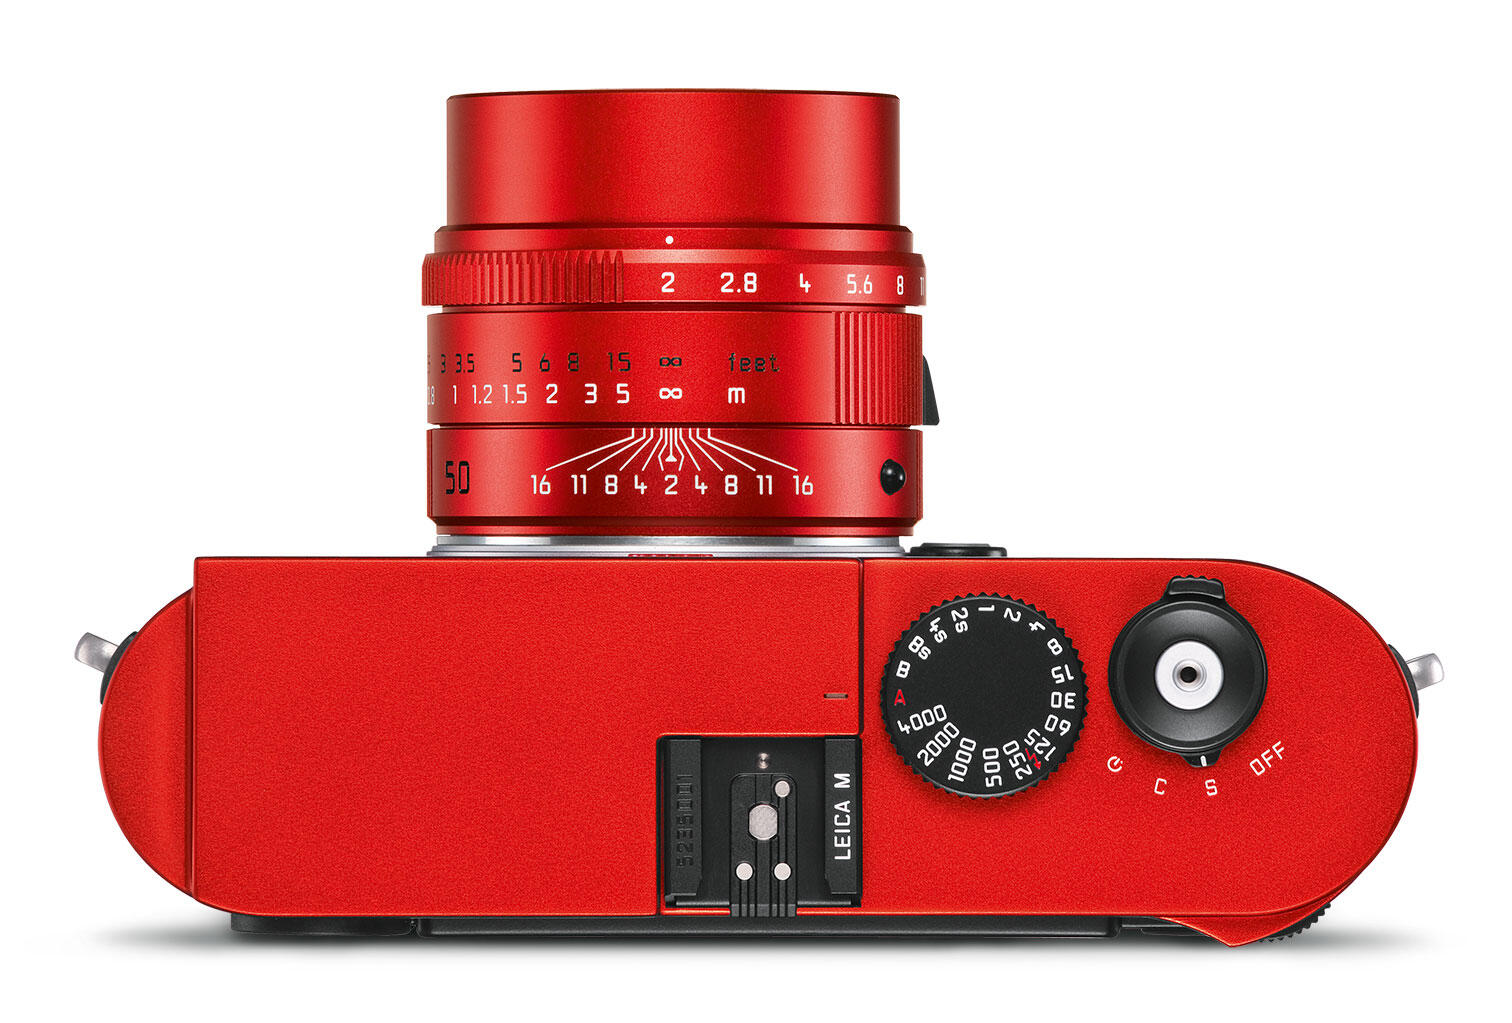 http://static.leica-camera.com/var/leica/storage/images/media/media-asset-management-mam/global-international/photography/m-system/m-special-editions/leica-m-262-red_eloxiert/leica-m_262_red_apo-summicron_50_red_top_rgb_1512-x-1008_ffff/2903792-1-eng-MA/Leica-M_262_Red_APO-Summicron_50_Red_top_RGB_1512-x-1008_ffff_reference.jpg